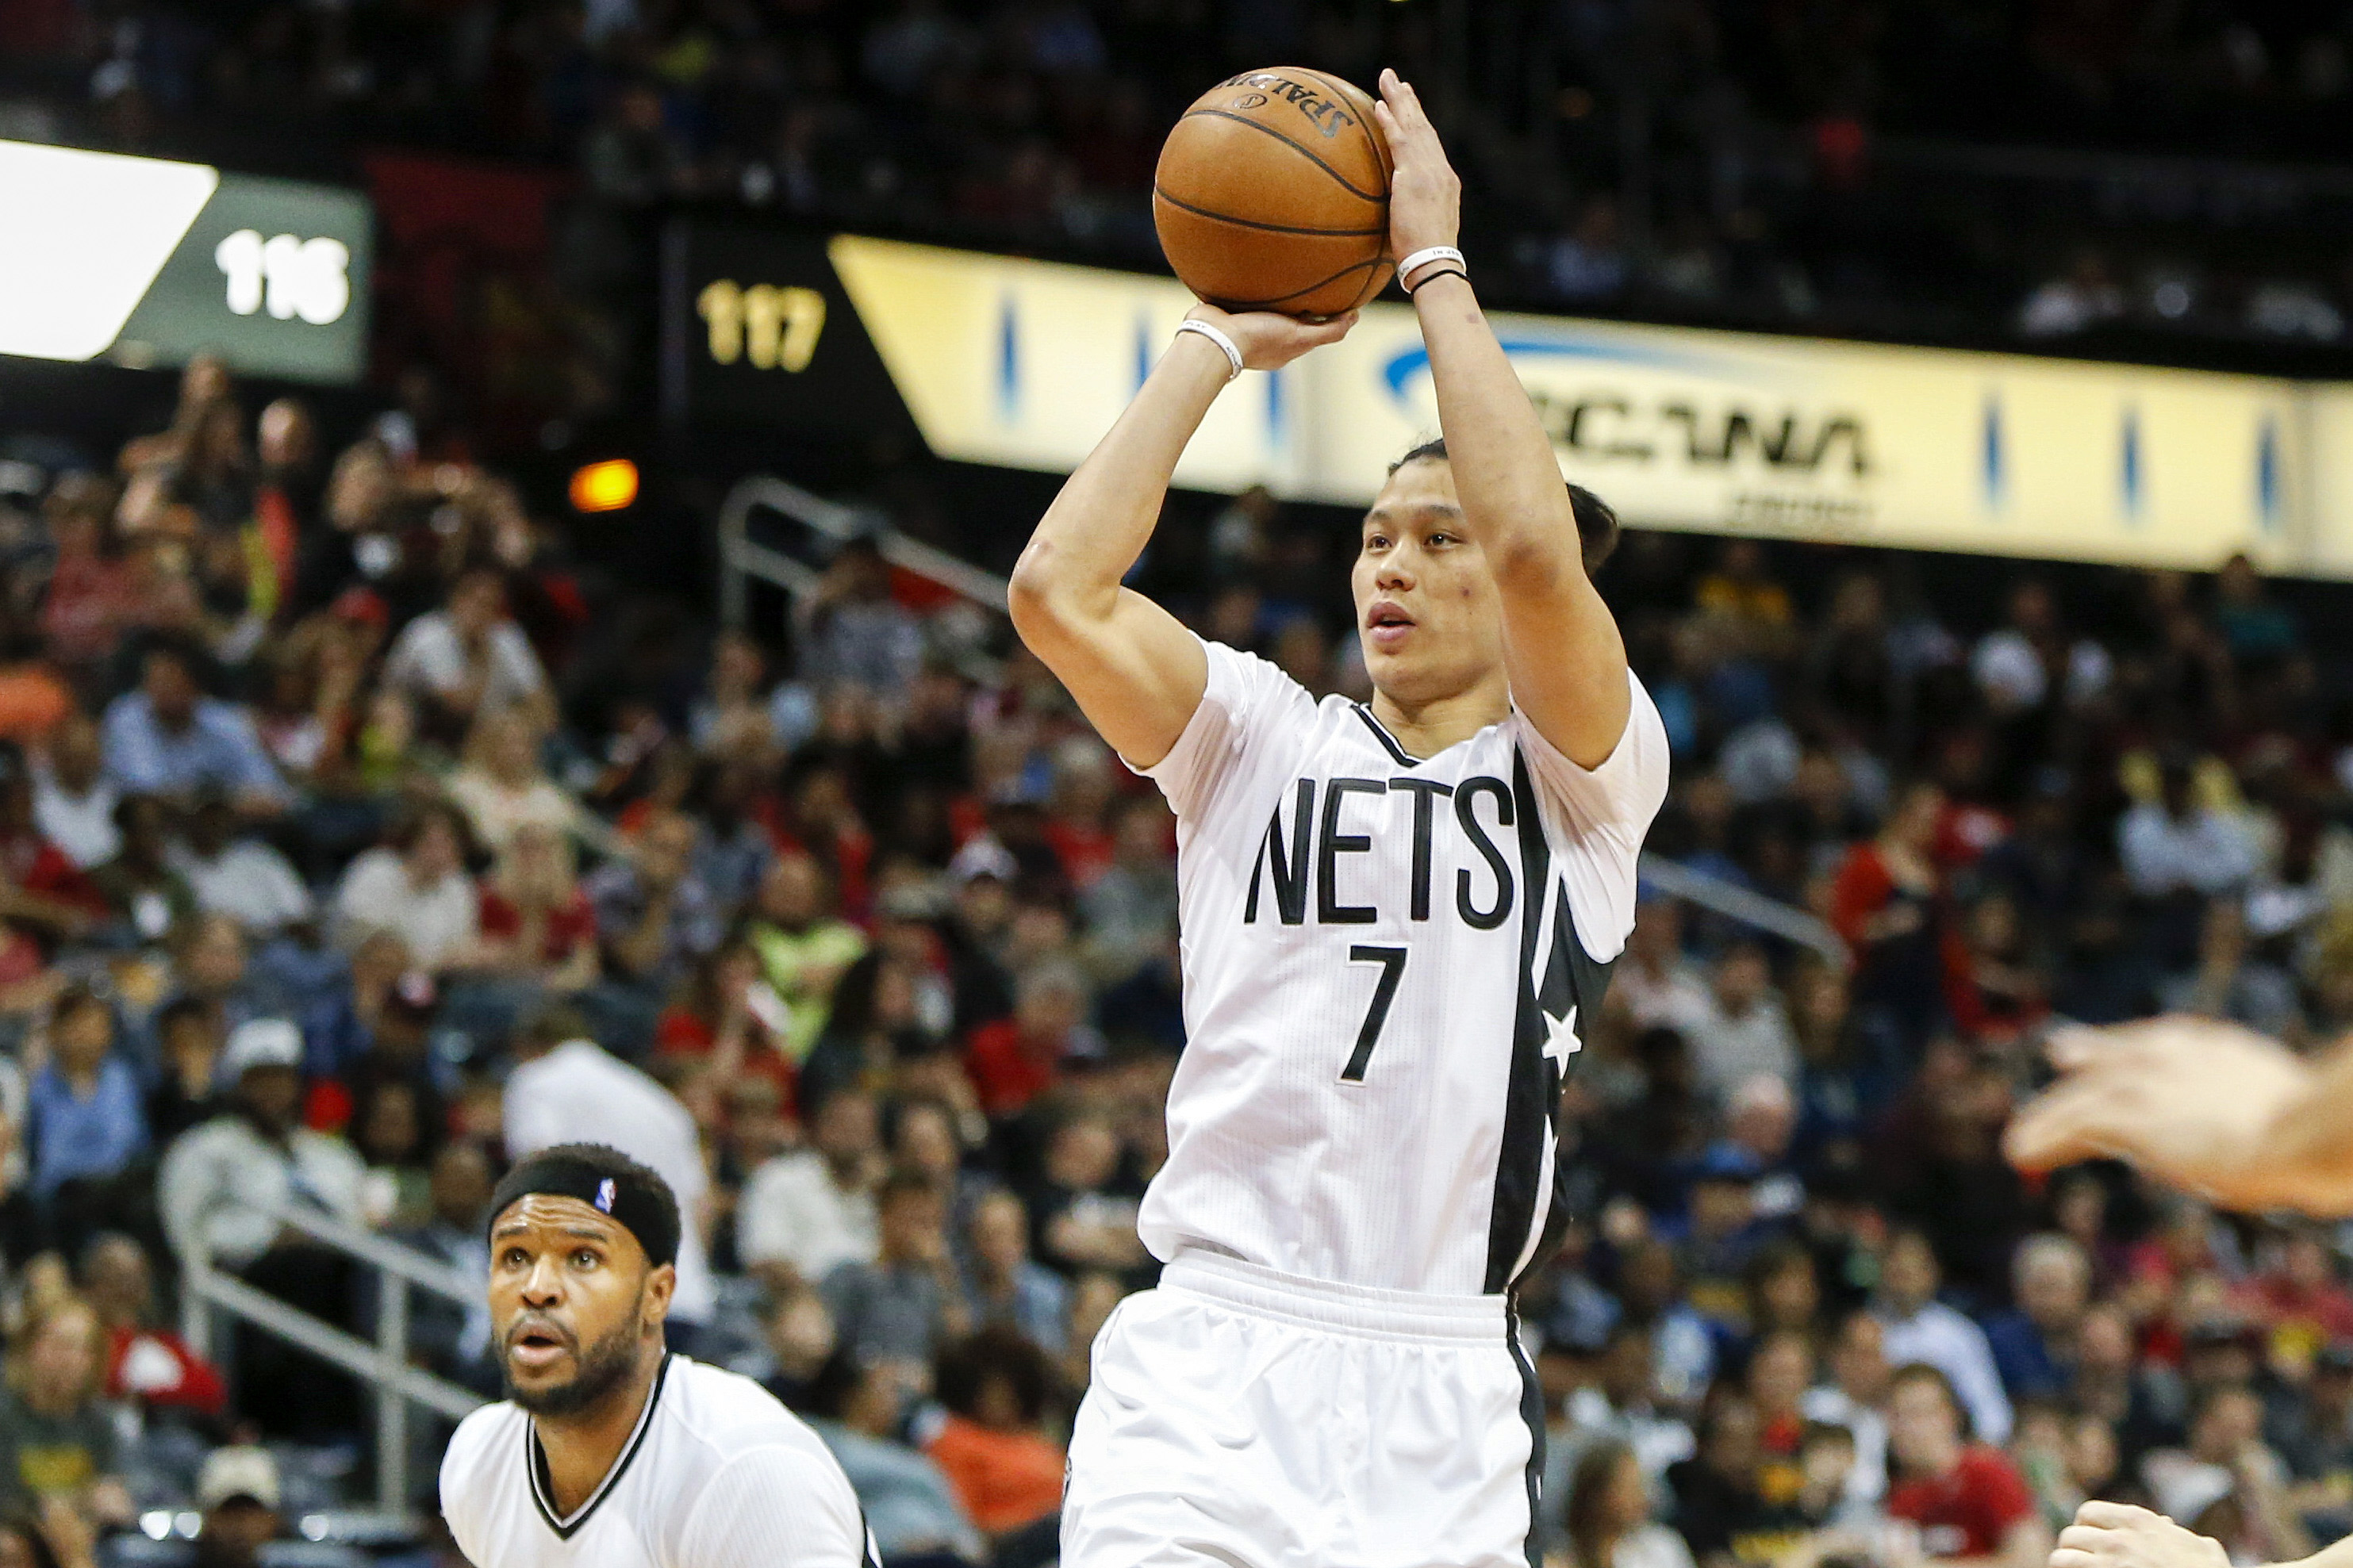 finest selection 86bb1 018b7 Brooklyn Nets 2016-17 Player Grades: Jeremy Lin - Page 2